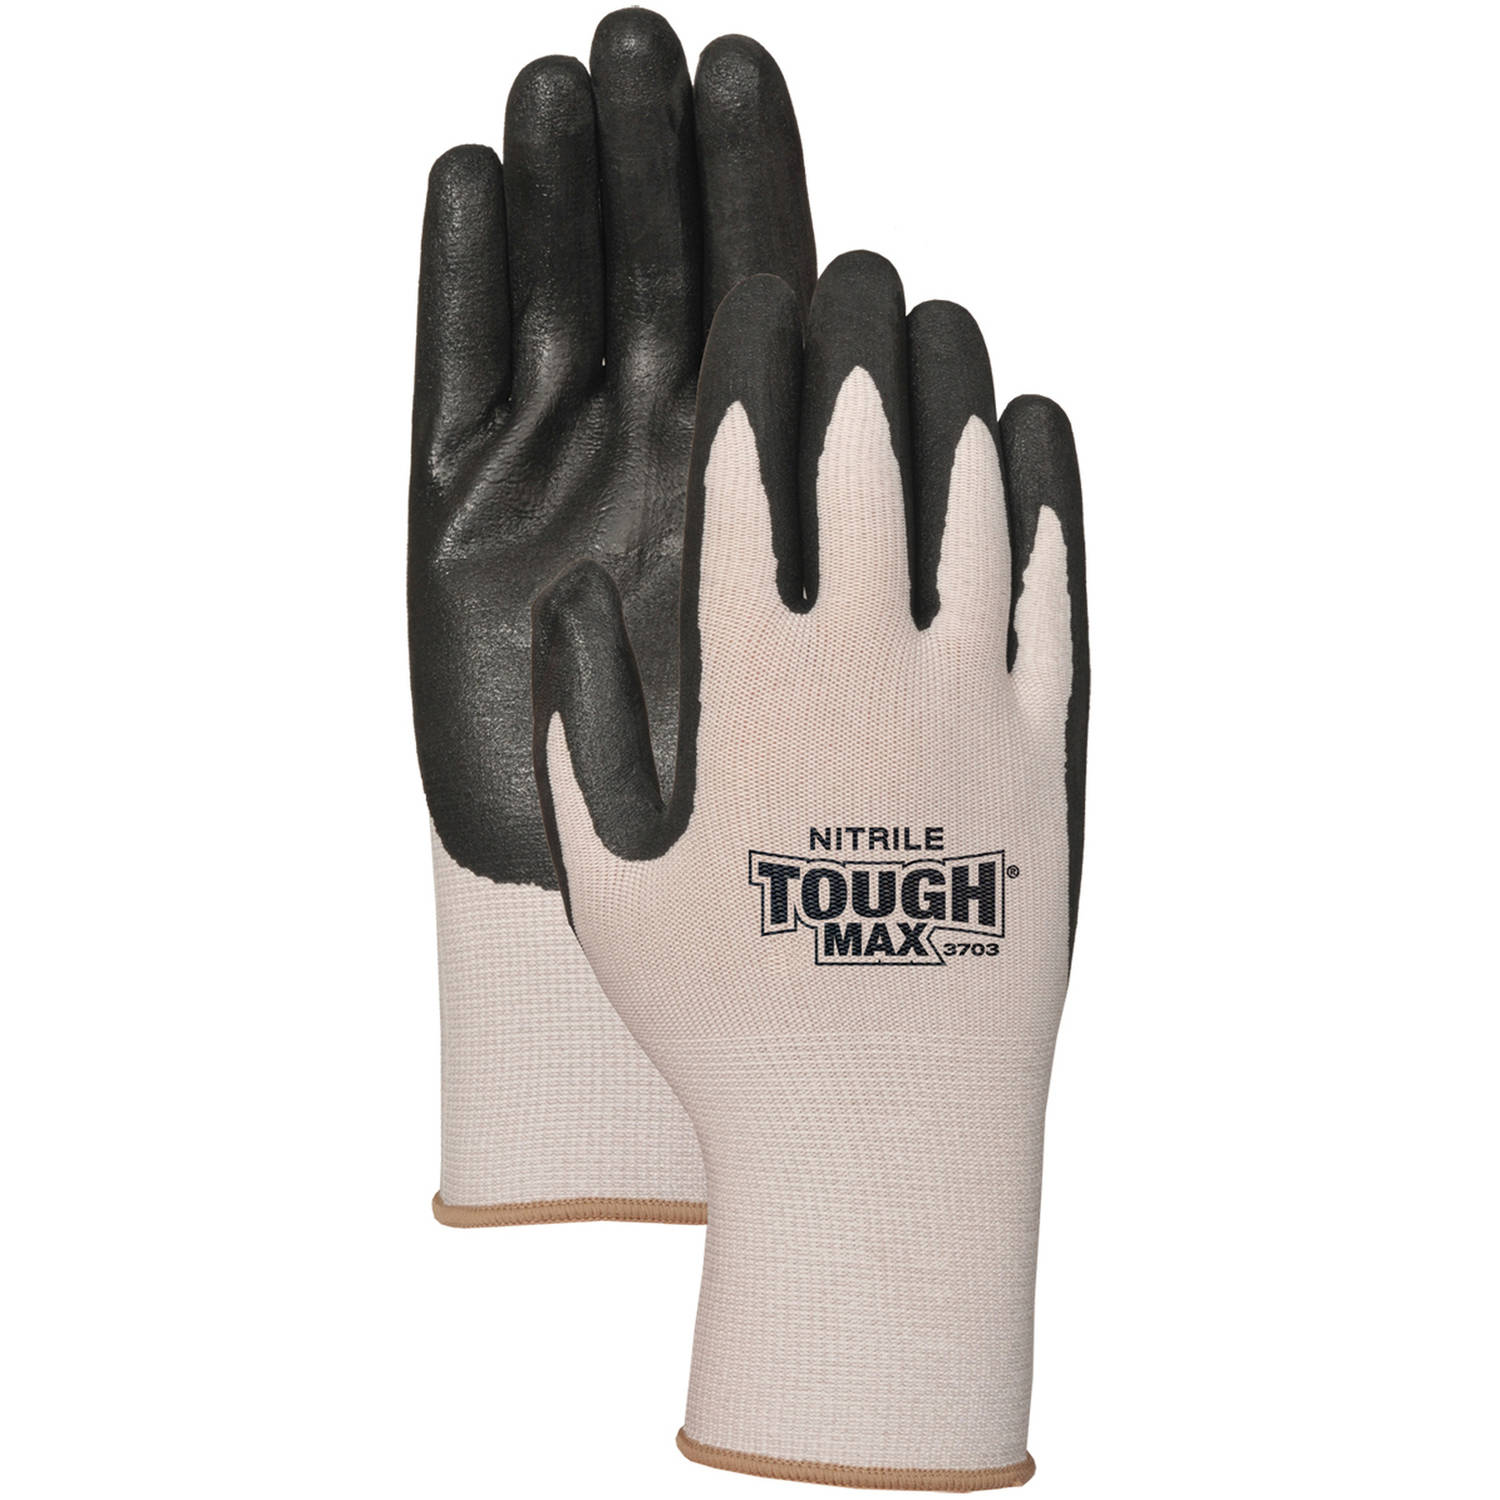 Bellingham Glove C3703L Large Nitrile with Cool Max Gloves